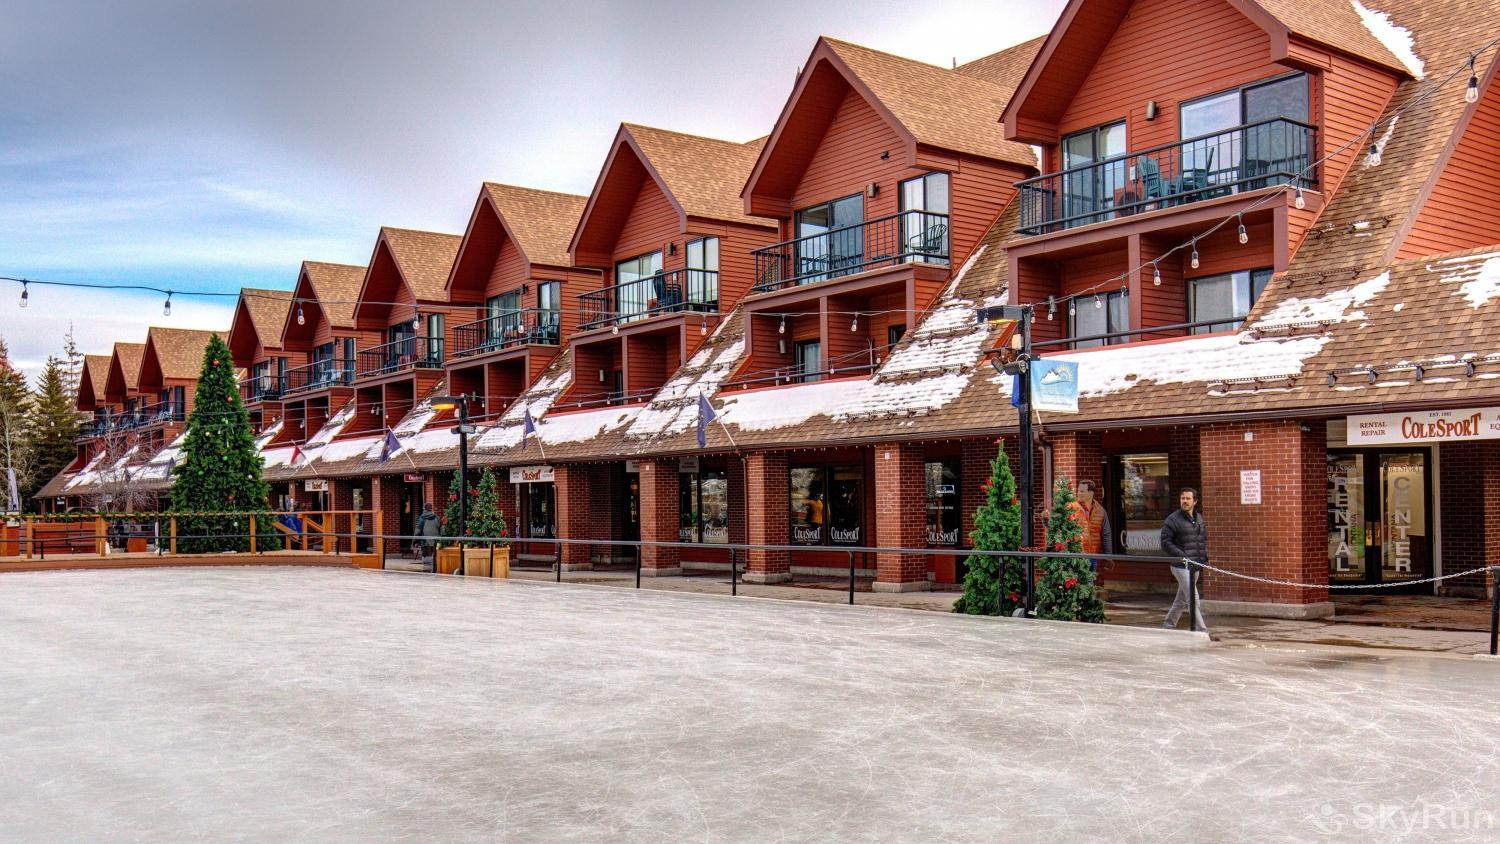 Village Loft 2 Bedroom Ski-In Ski-Out! Ice Rink just outside condo